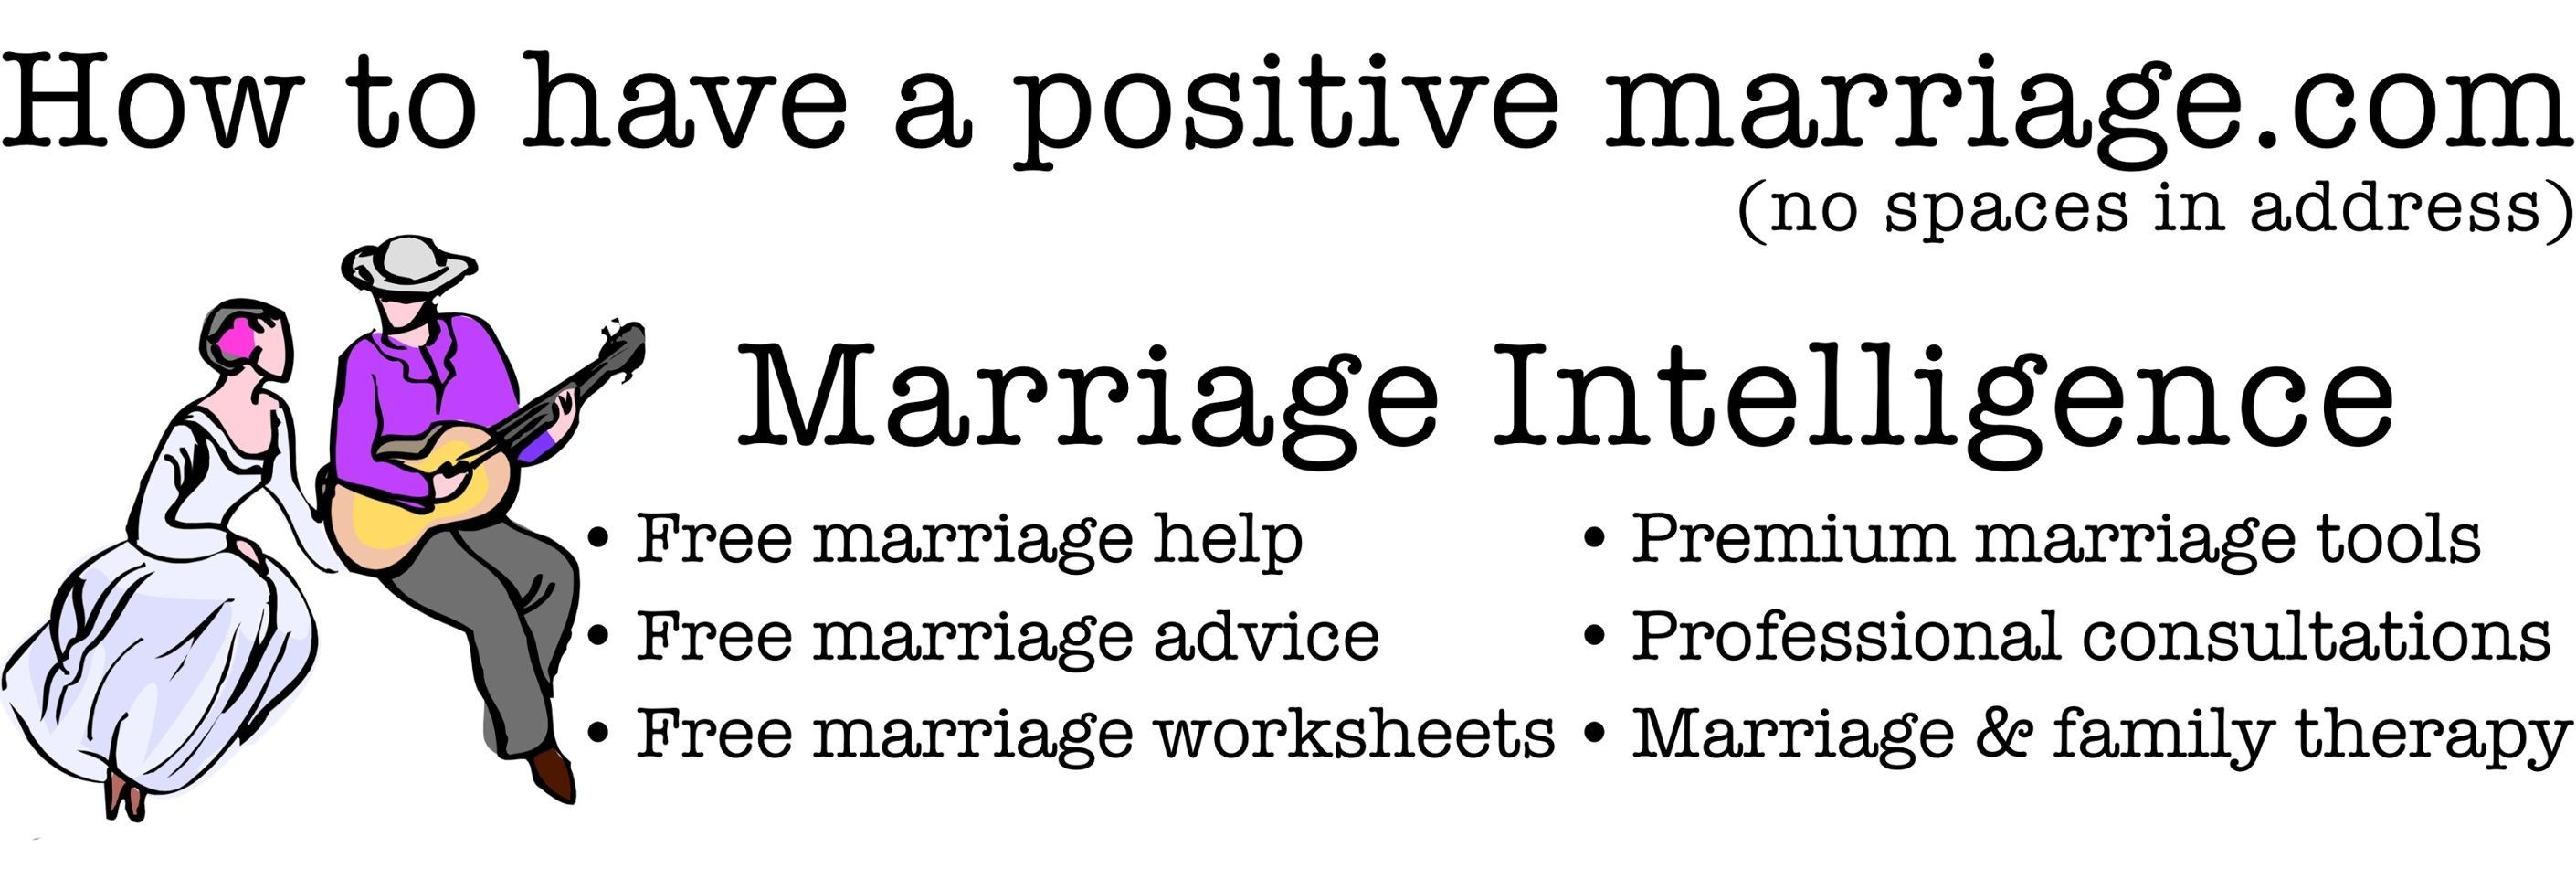 Marriage Therapy Worksheets Tutore